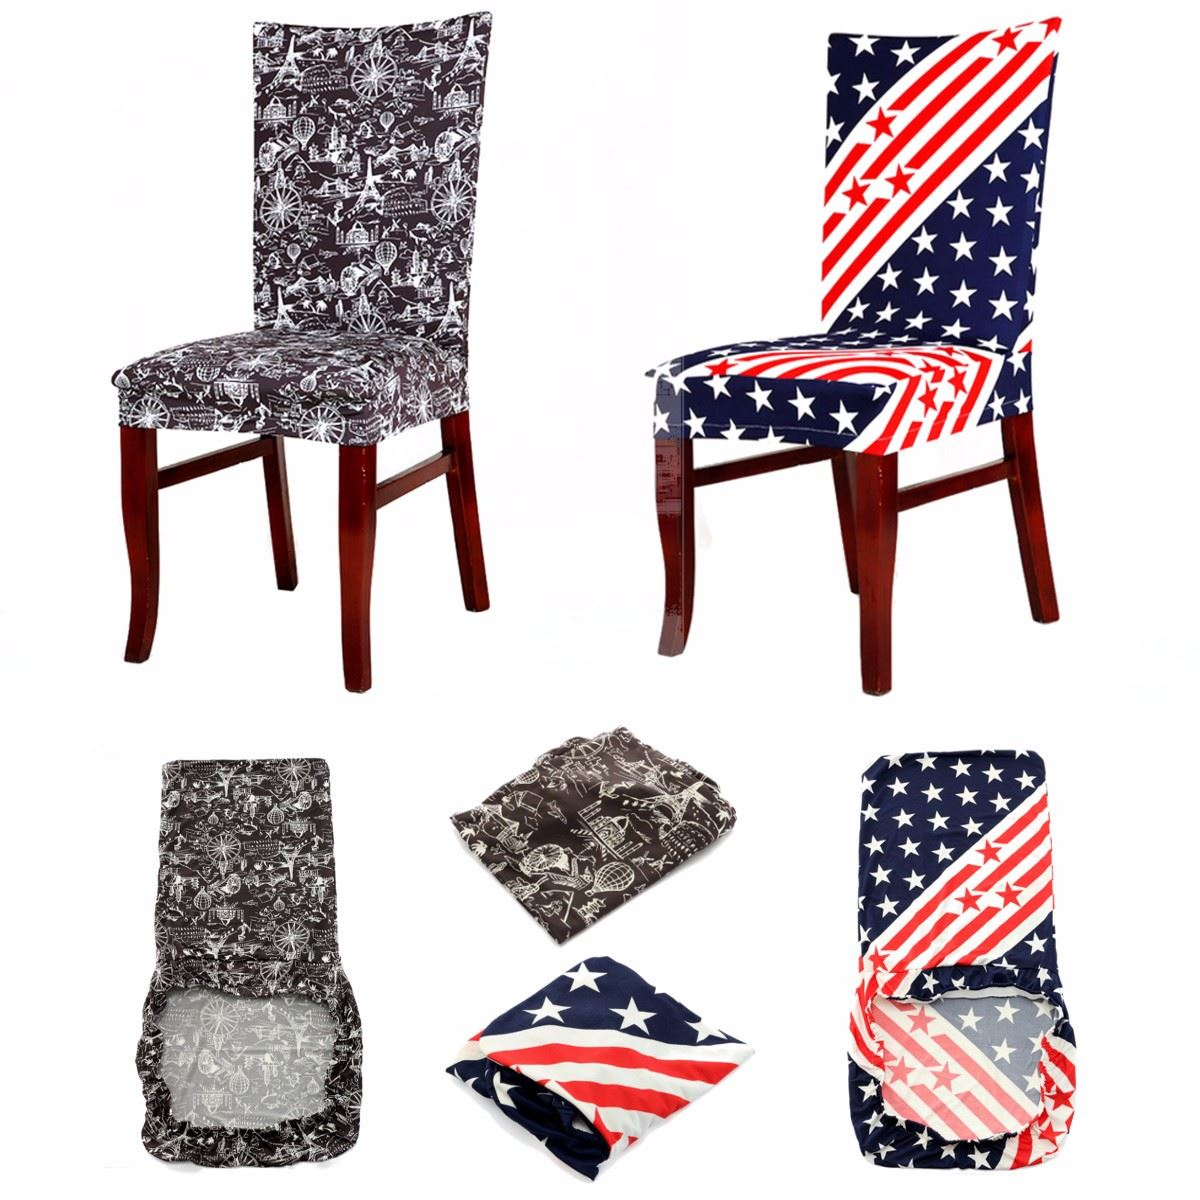 Seat Chair Cover Removable Stretch Slipcovers Stars Dining Room Stool For Home Restaurant Weddings Banquet